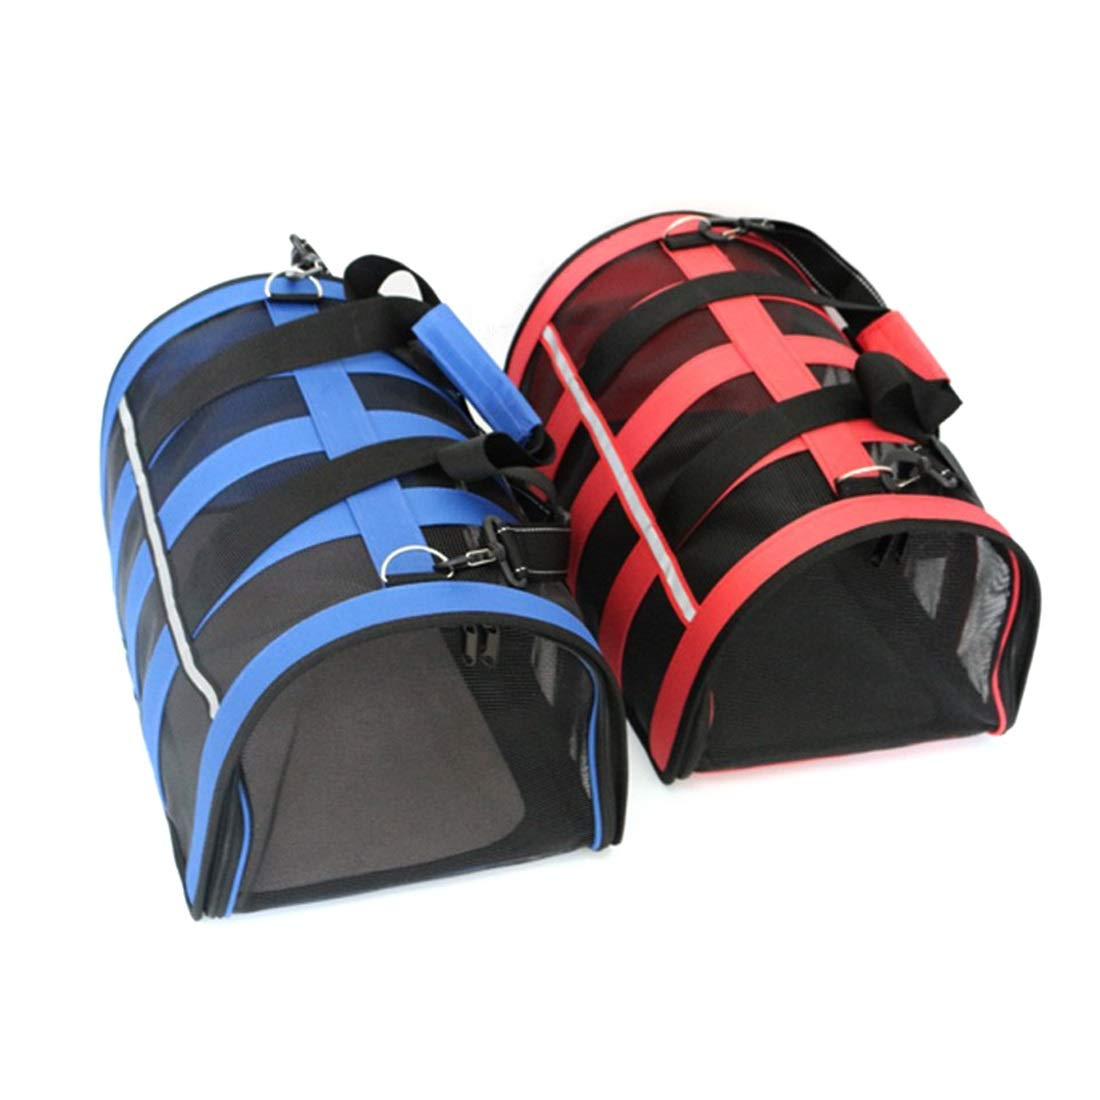 Red L Red L HUAyue Pet Backpack Outside Oxford Cloth Mesh Out Portable Dog Breathable Slash Cat Bag (color   Red, Size   L)